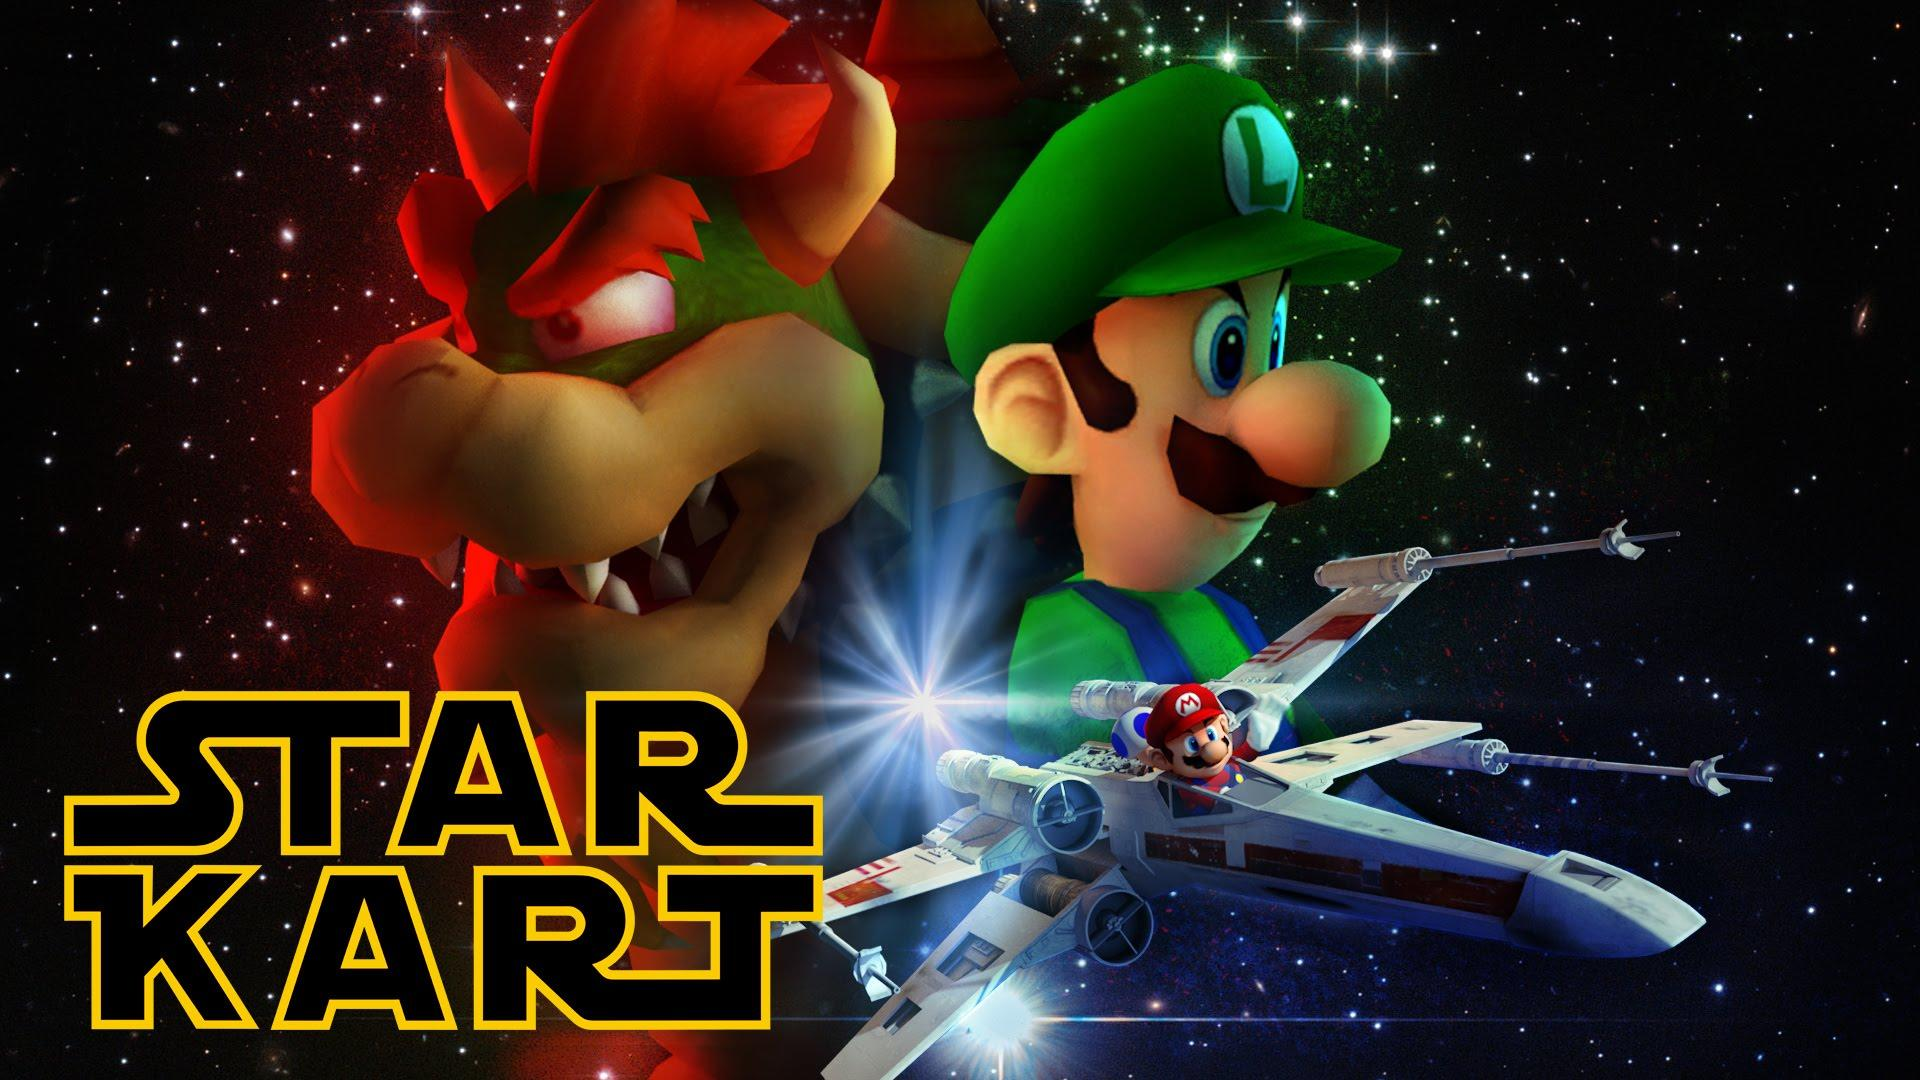 Star Wars gets mashed up with Mario Kart in the best video of the week